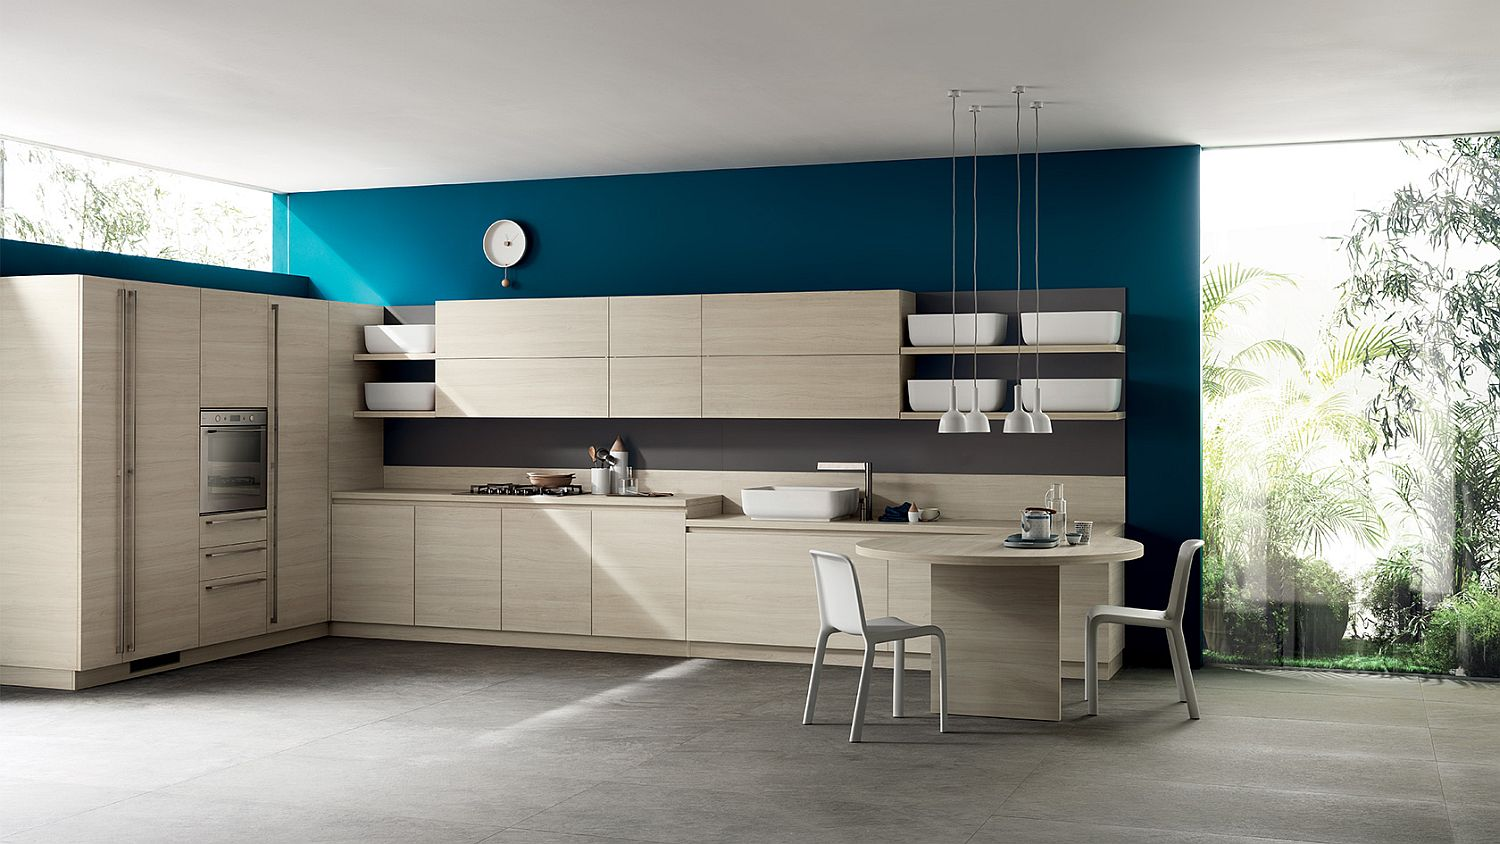 Sleek and stylish corner kitchen composition